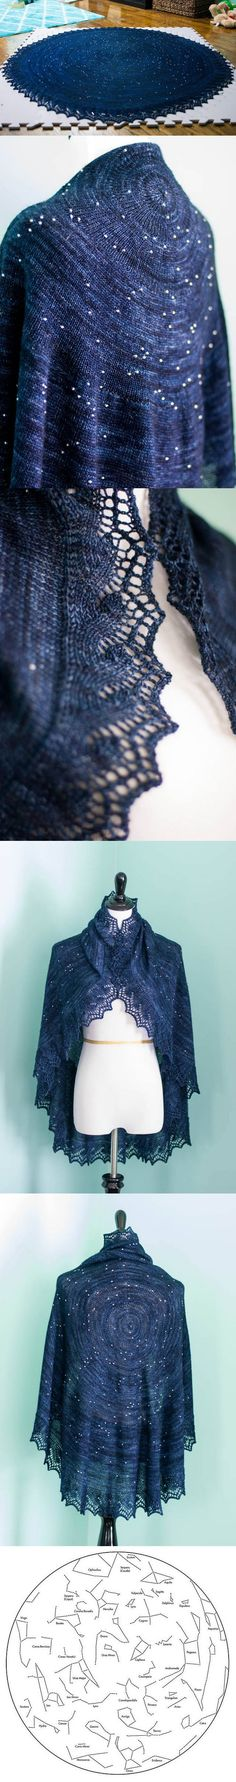 Star map shawl. It is beaded with over 350 beads to represent the night sky as seen from the North Pole.